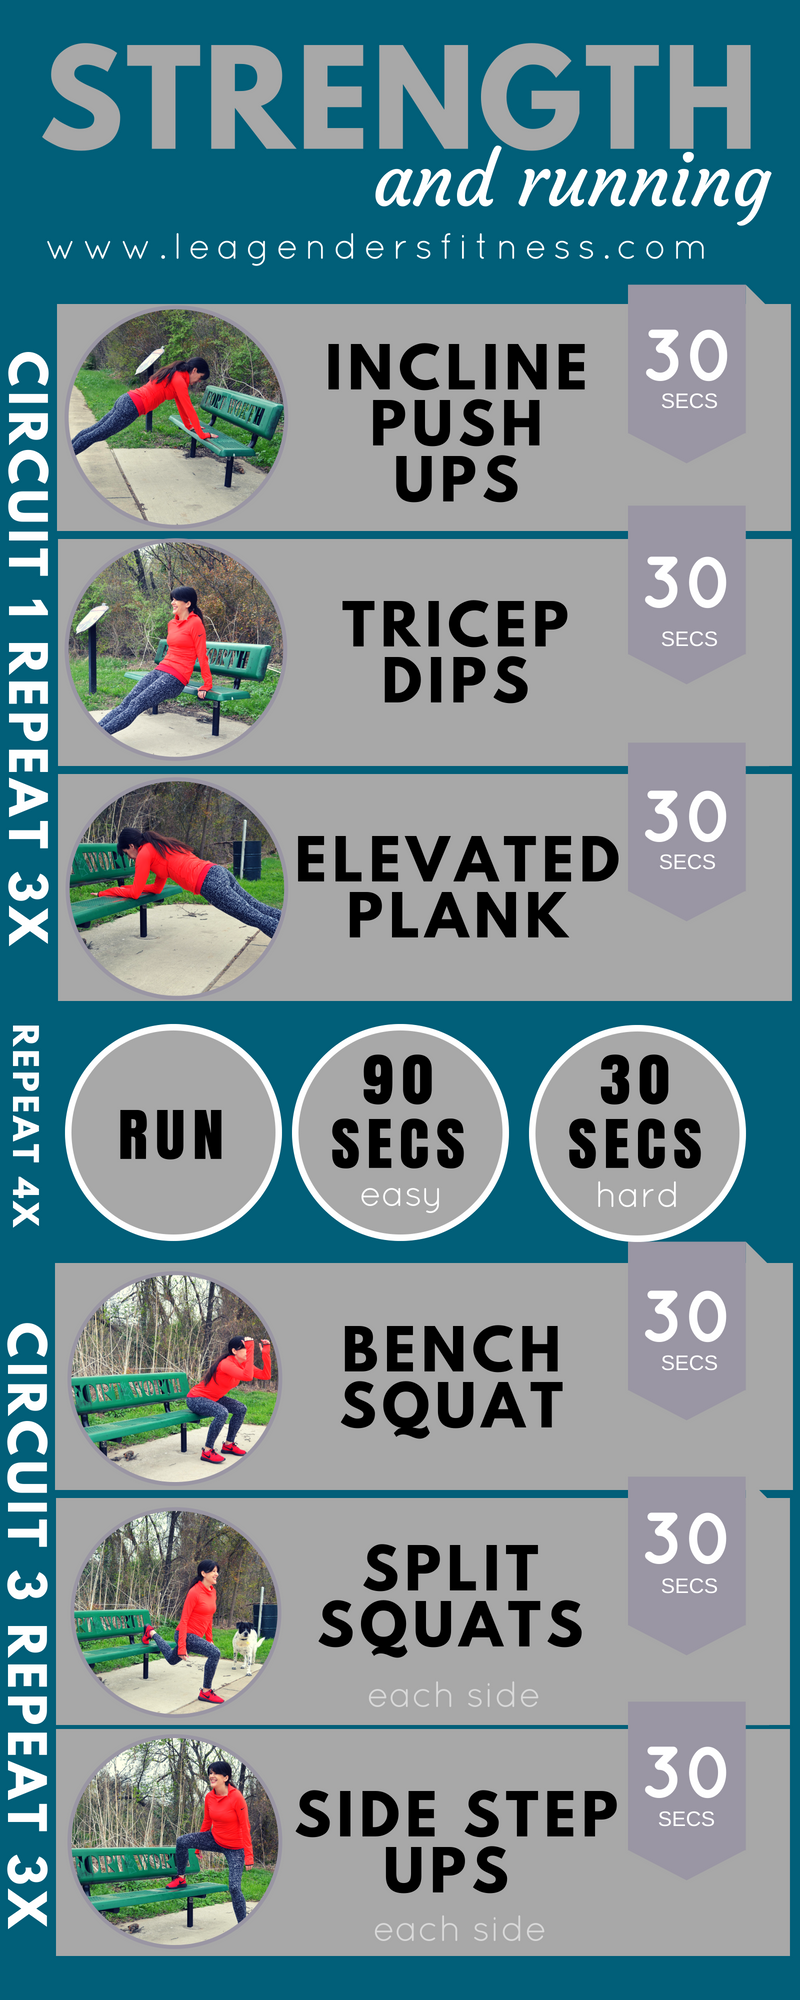 strength and running intervals to improve speed. save to your favorite Pinterest board for later.